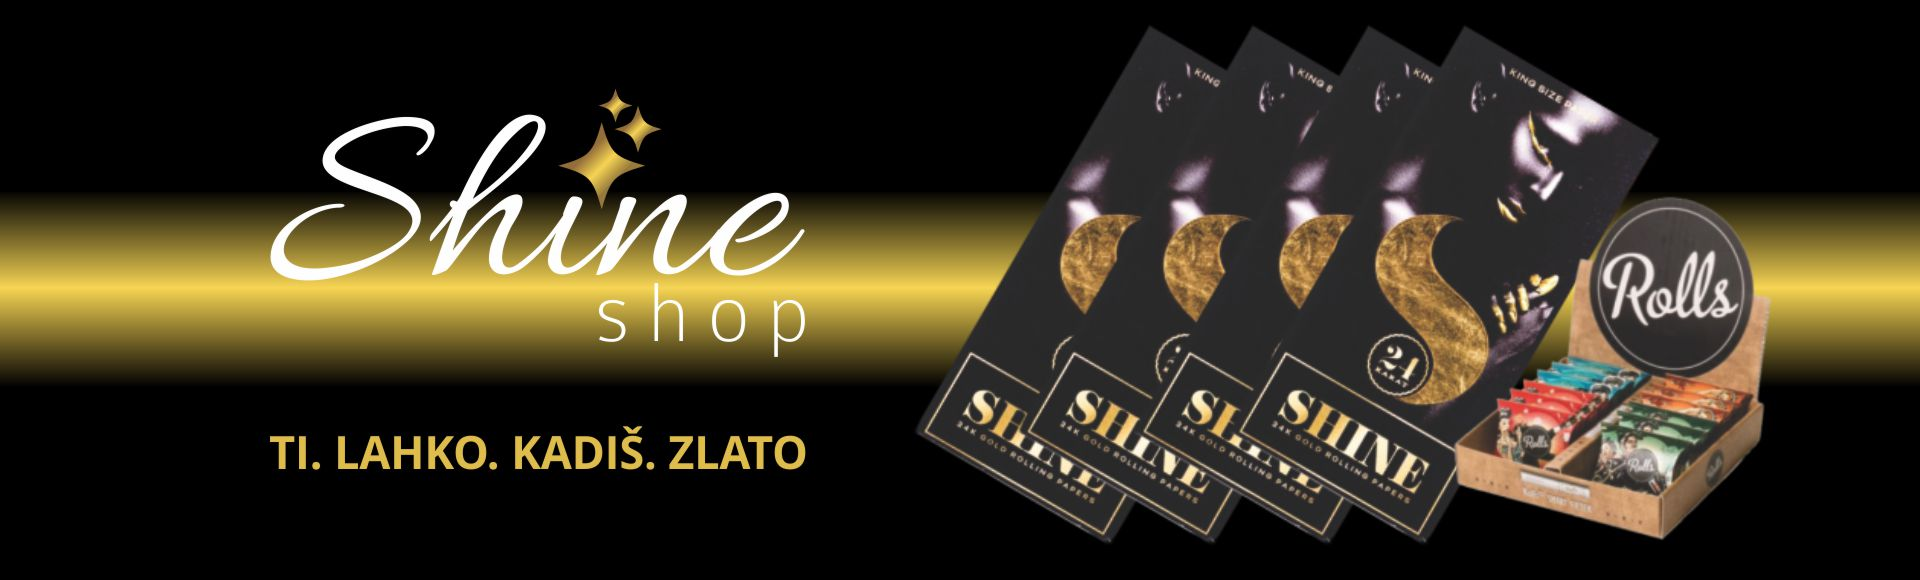 shineshop-banner-1920x580